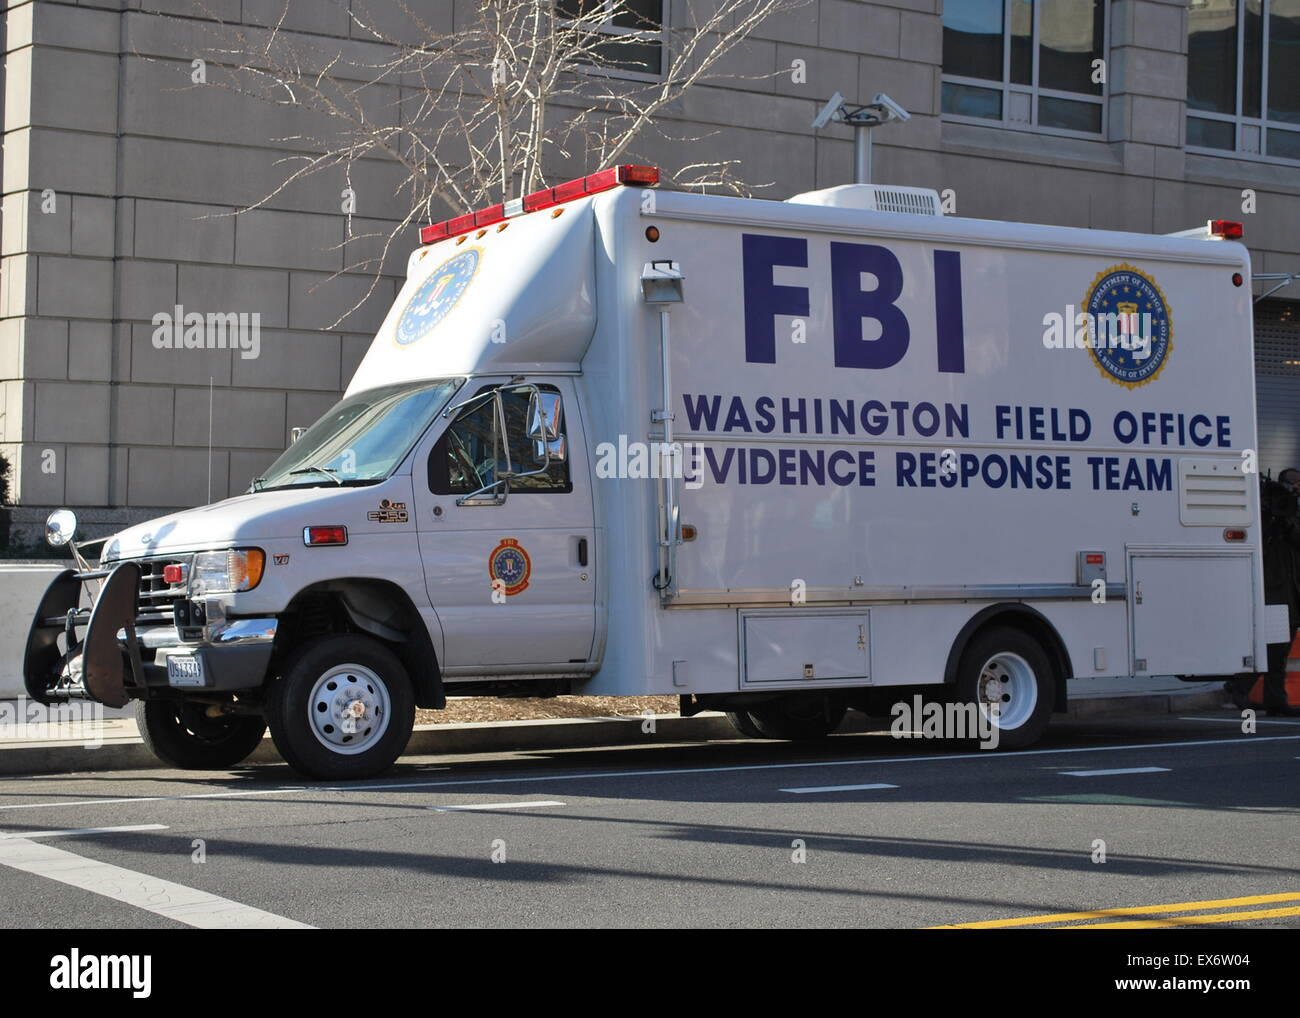 FBI evidence response team vehicle - Stock Image